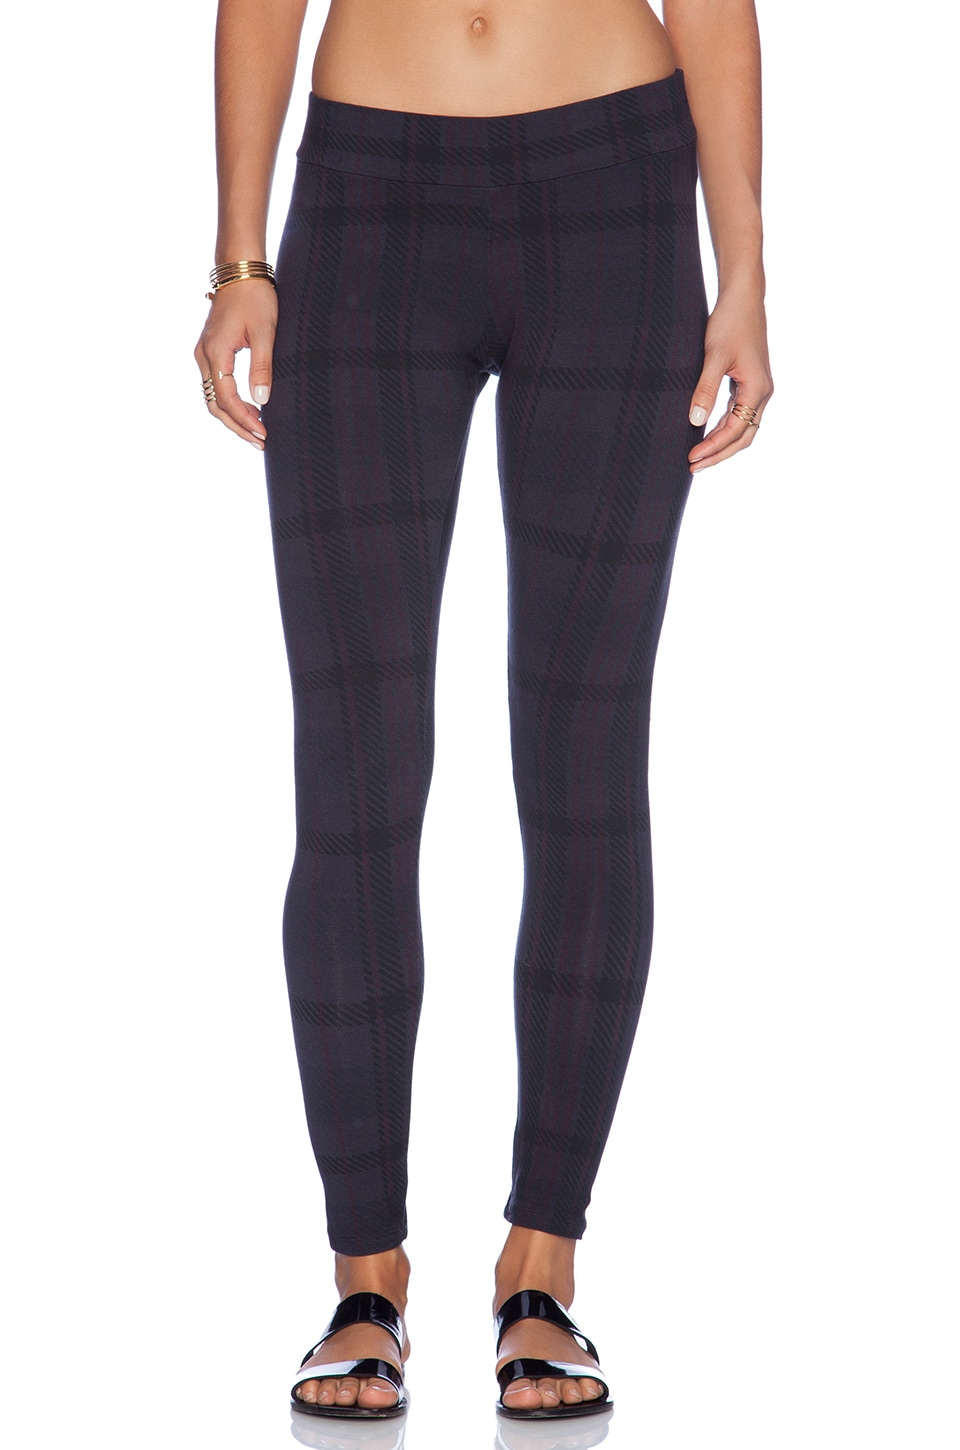 MONROW Oversized Plaid Print Basic Legging in Neptune